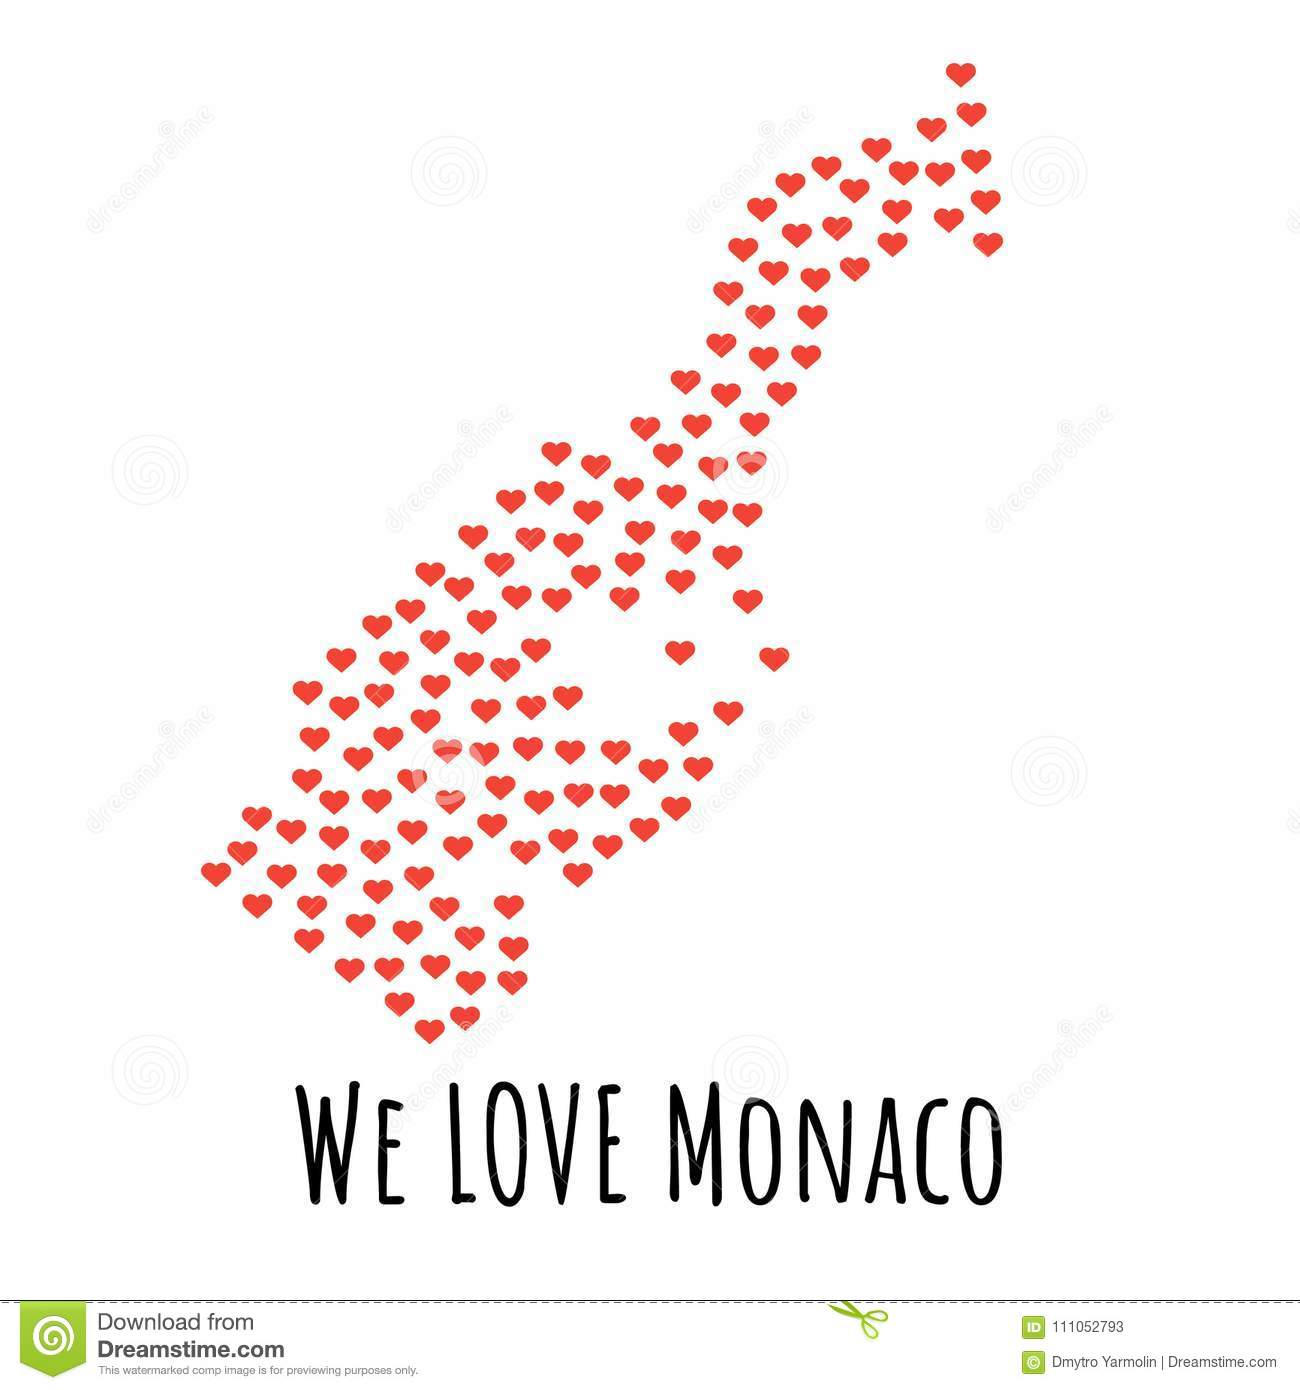 Monaco Map With Red Hearts Symbol Of Love Abstract Background